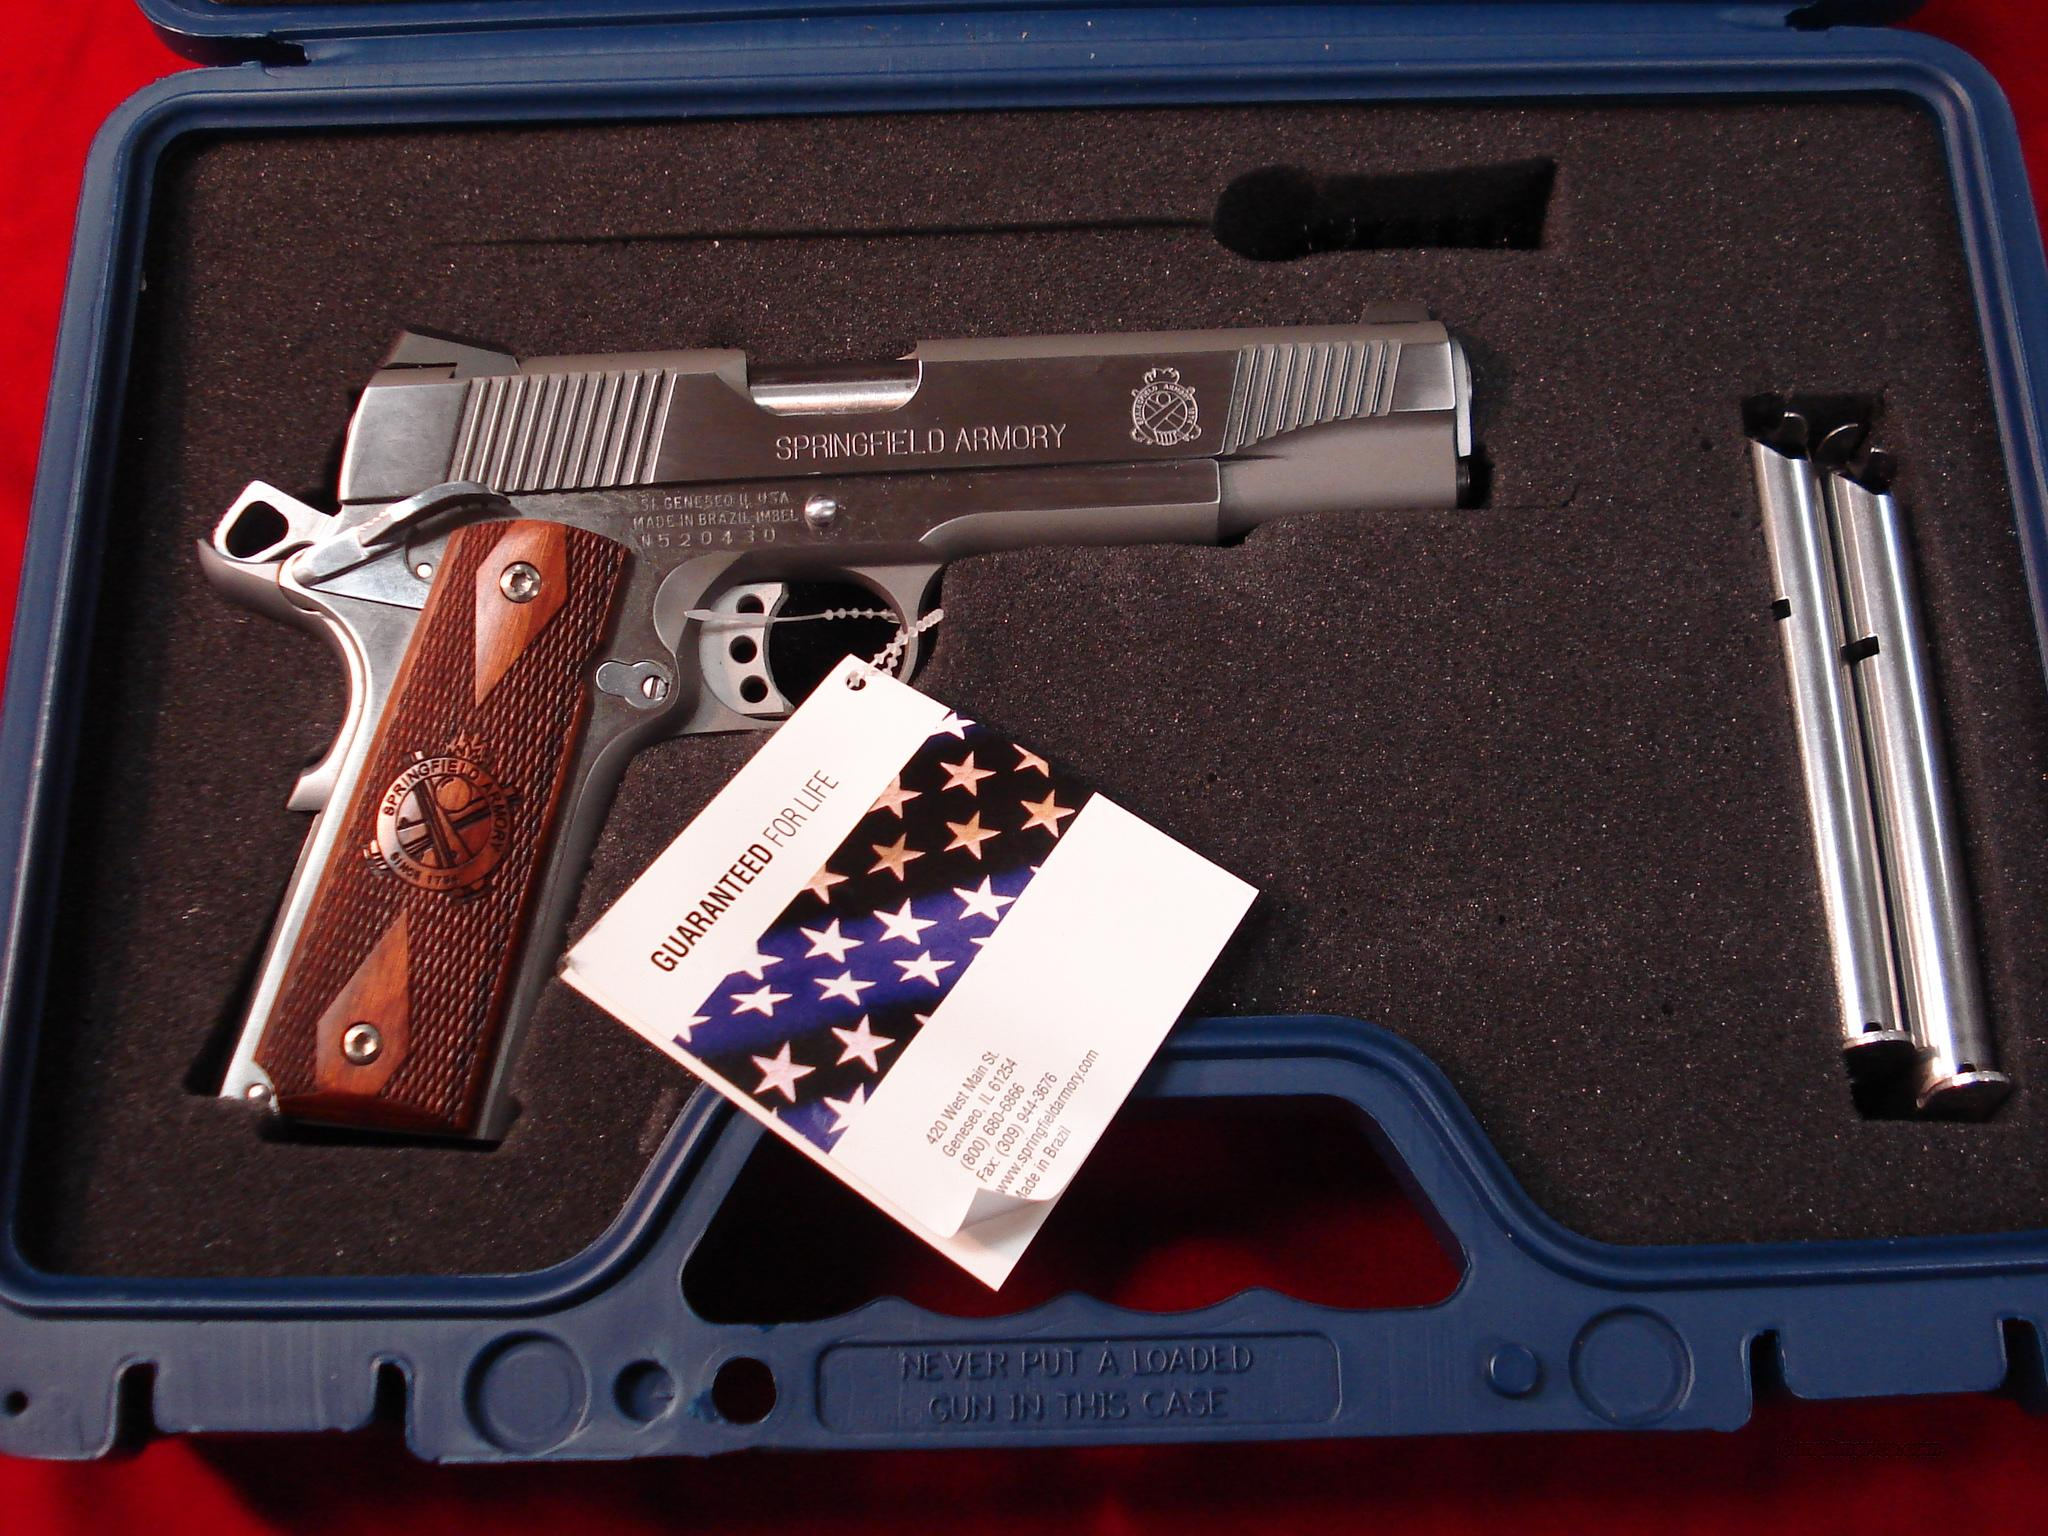 SPRINGFIELD ARMORY STAINLESS 1911 A1 LOADED NEW (PX9151LP)  Guns > Pistols > Springfield Armory Pistols > 1911 Type